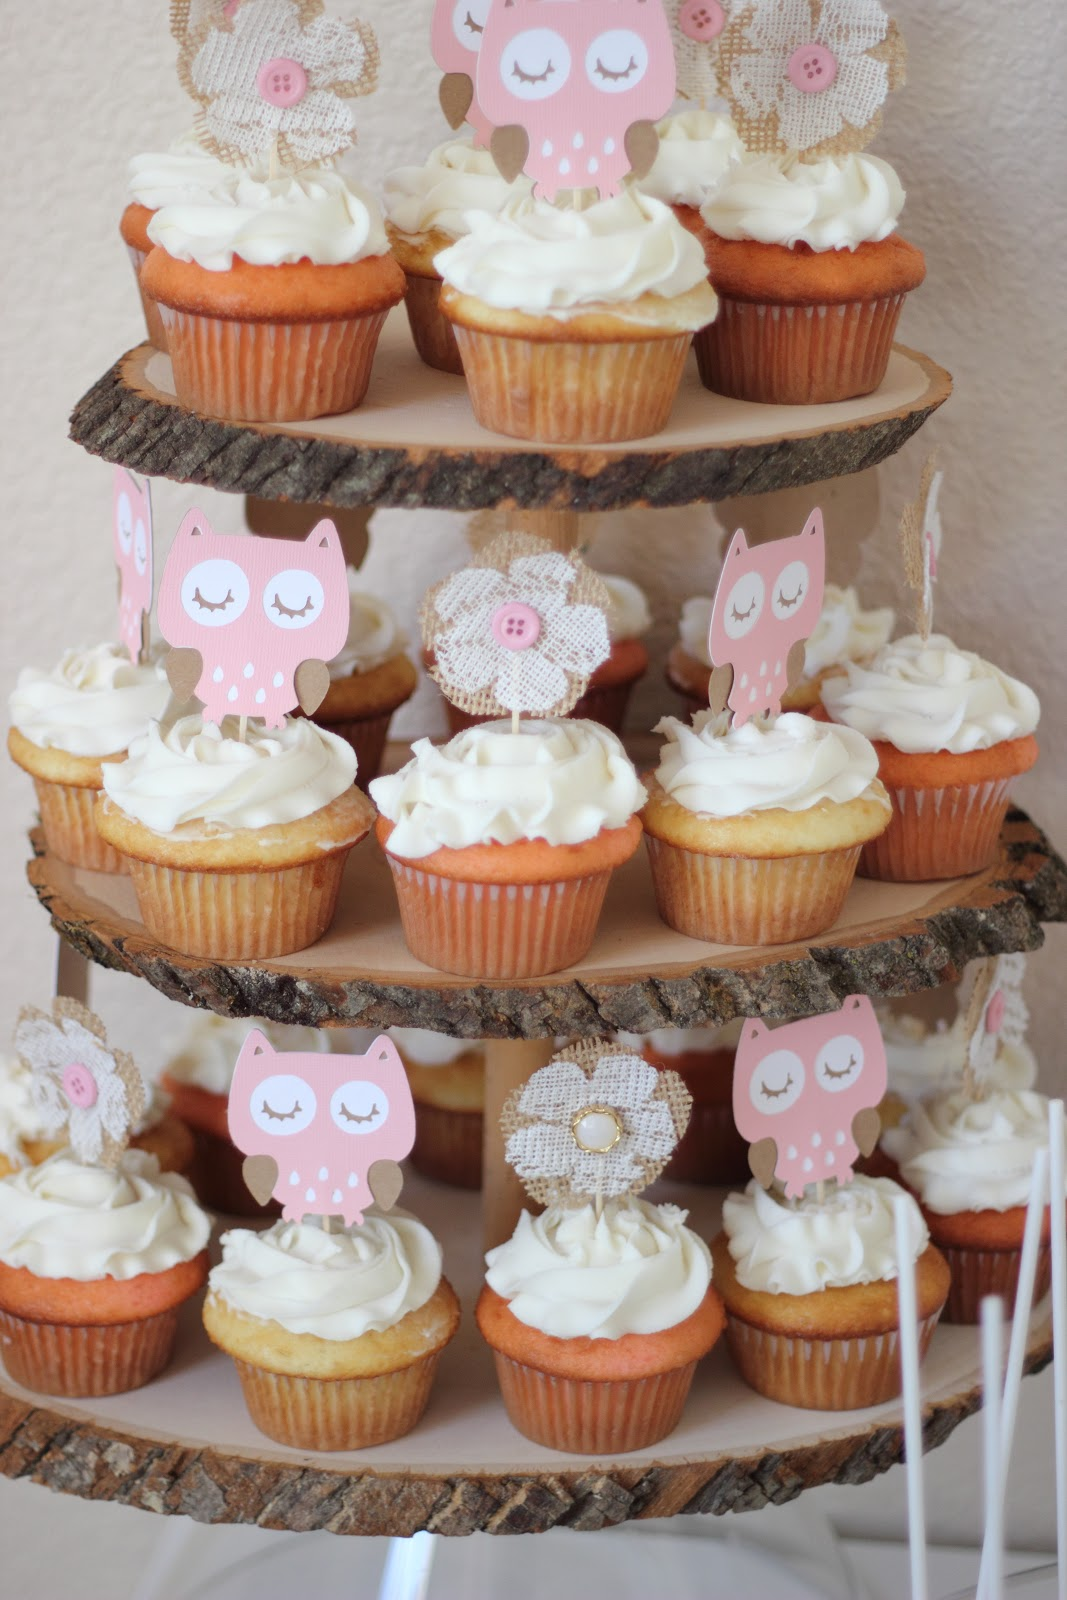 What A Beautiful Arrangement Of Cupcakes. Baby Owls In Pink And Tan, As  Well As Burlap And Lace Flowers With Pink Buttons Make Interesting Cupcake  Toppers.